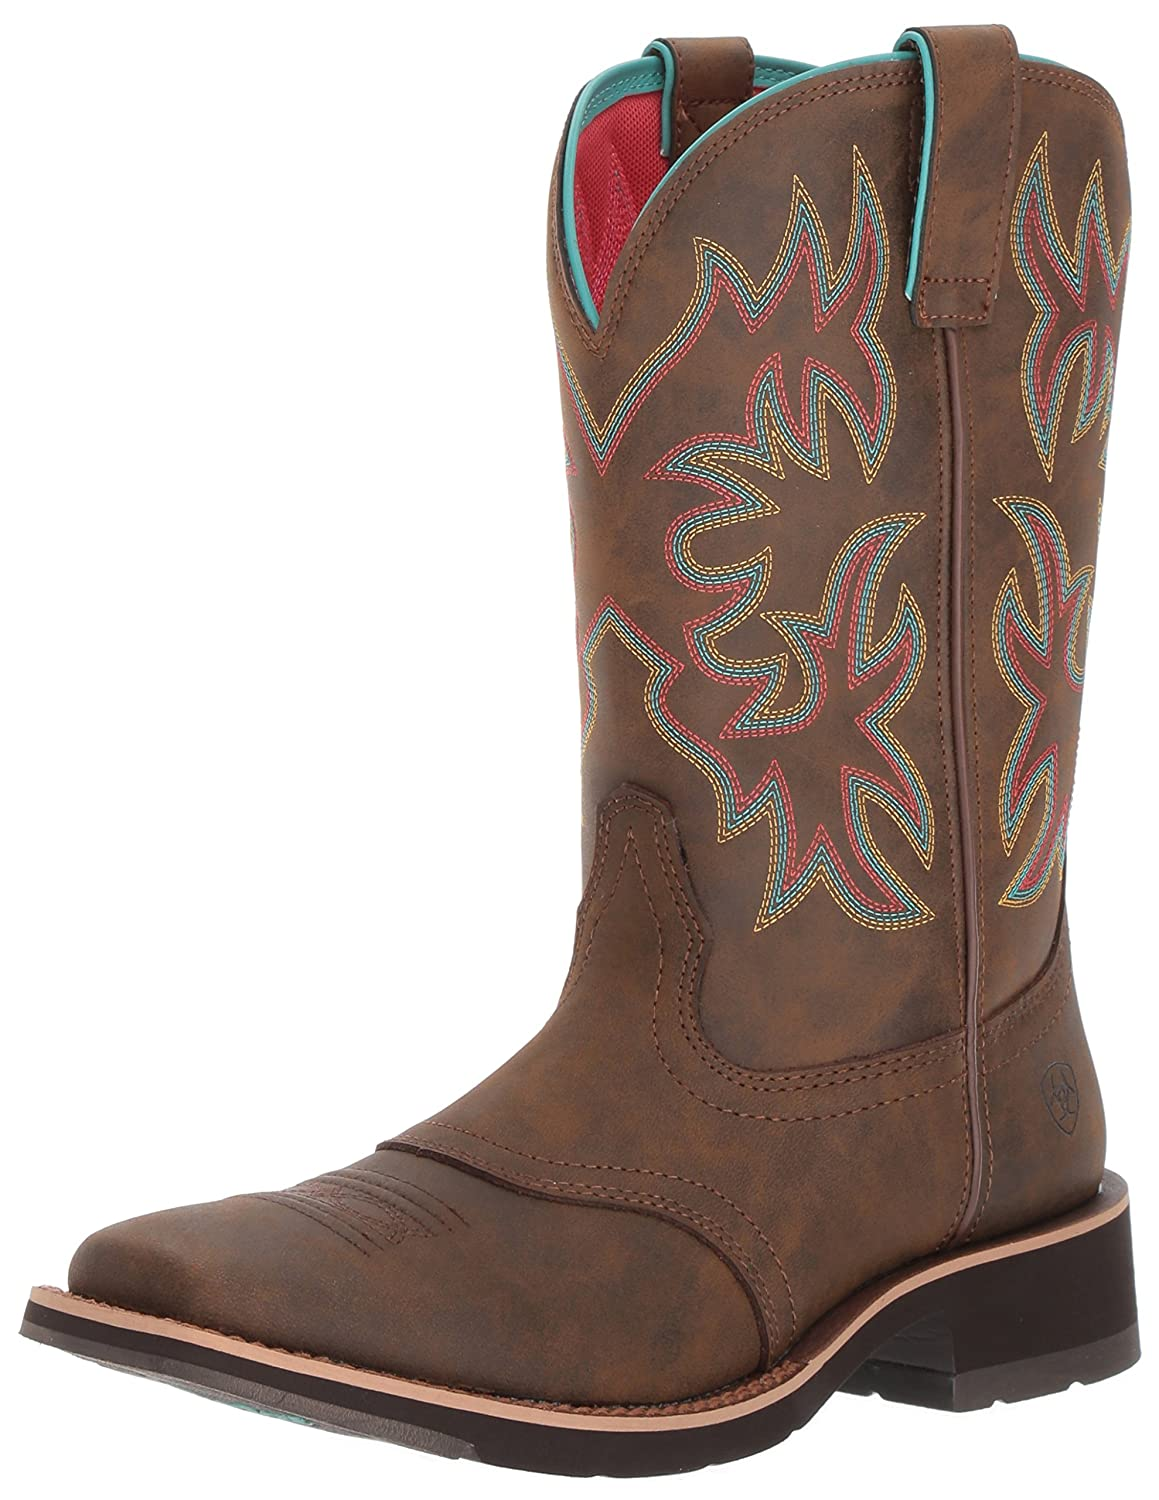 Ariat Women's Delilah Work Boot Ariat Women' s 10018676